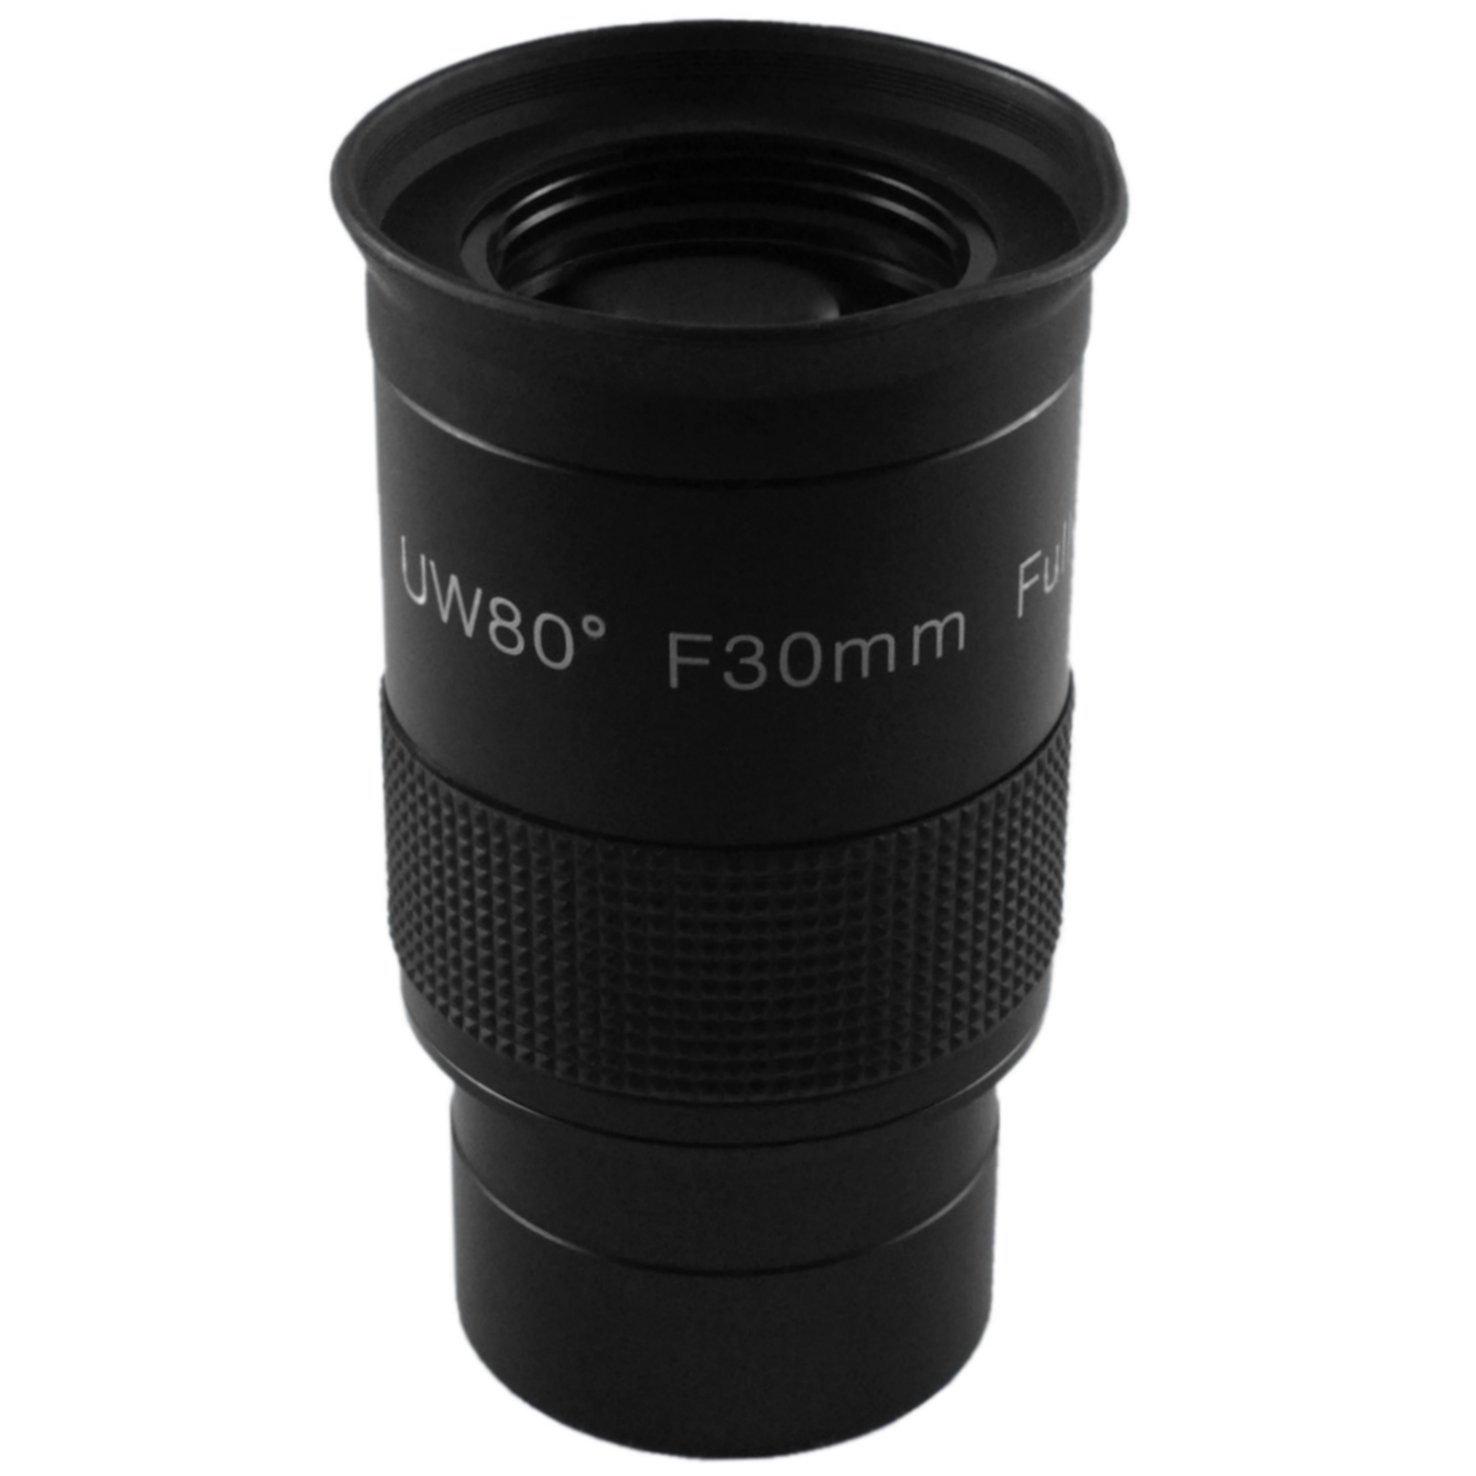 Astromania Fully Multi-coated 2'' Untra-Wide 80 Degree Eyepiece For Telescope - F30mm by Astromania